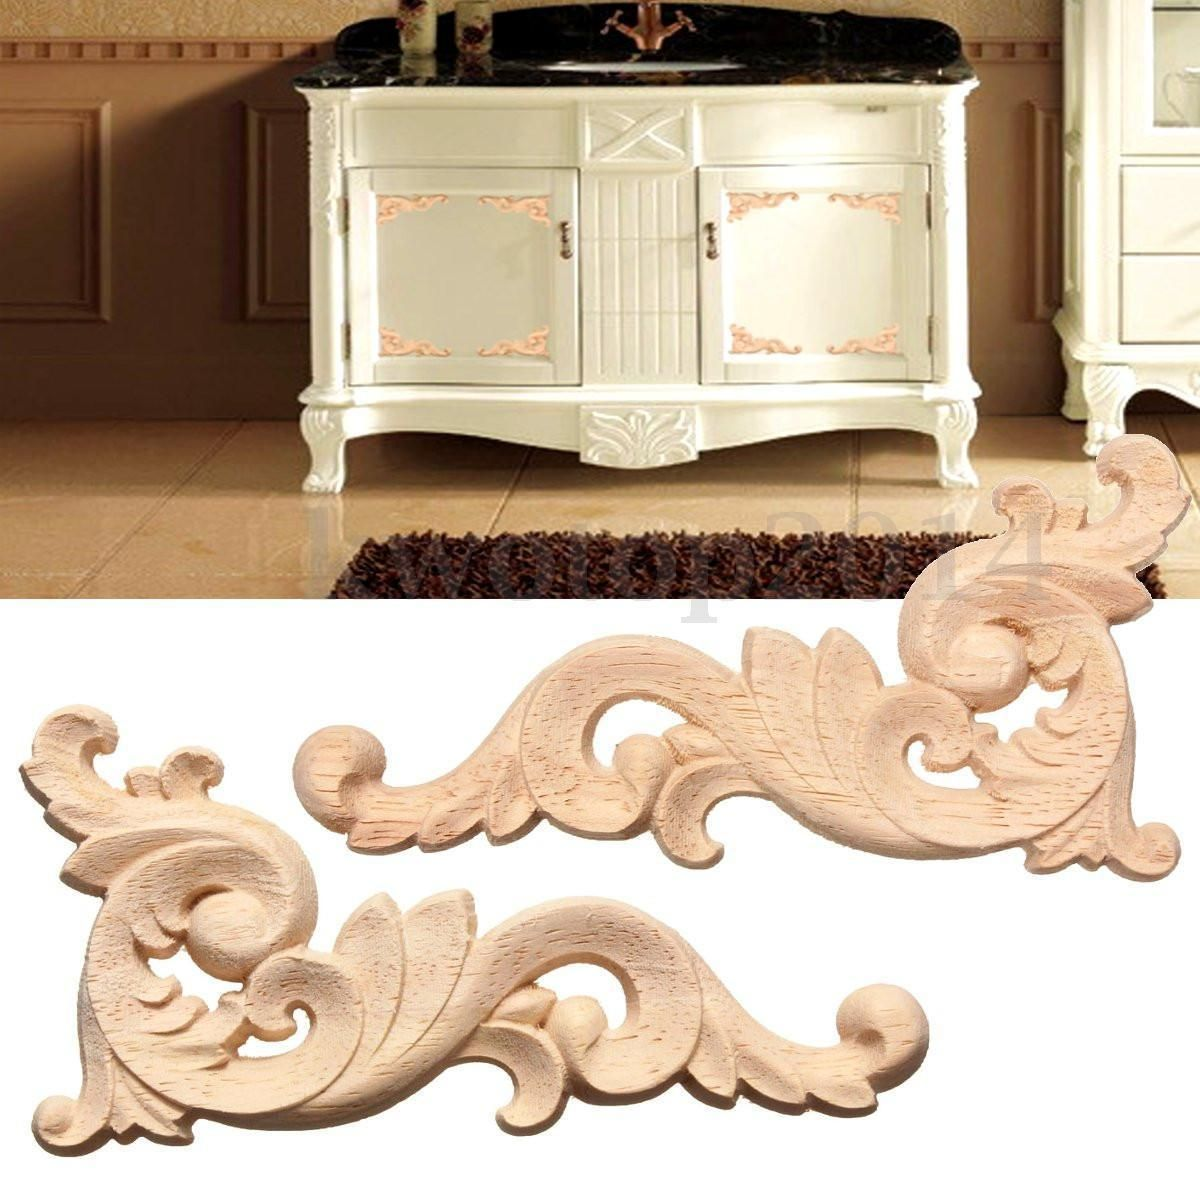 Wood Carved Decal Corner Onlay Applique Frame Door Wall Decor 126cm Unpainted Furniture Decor Decor Frames On Wall